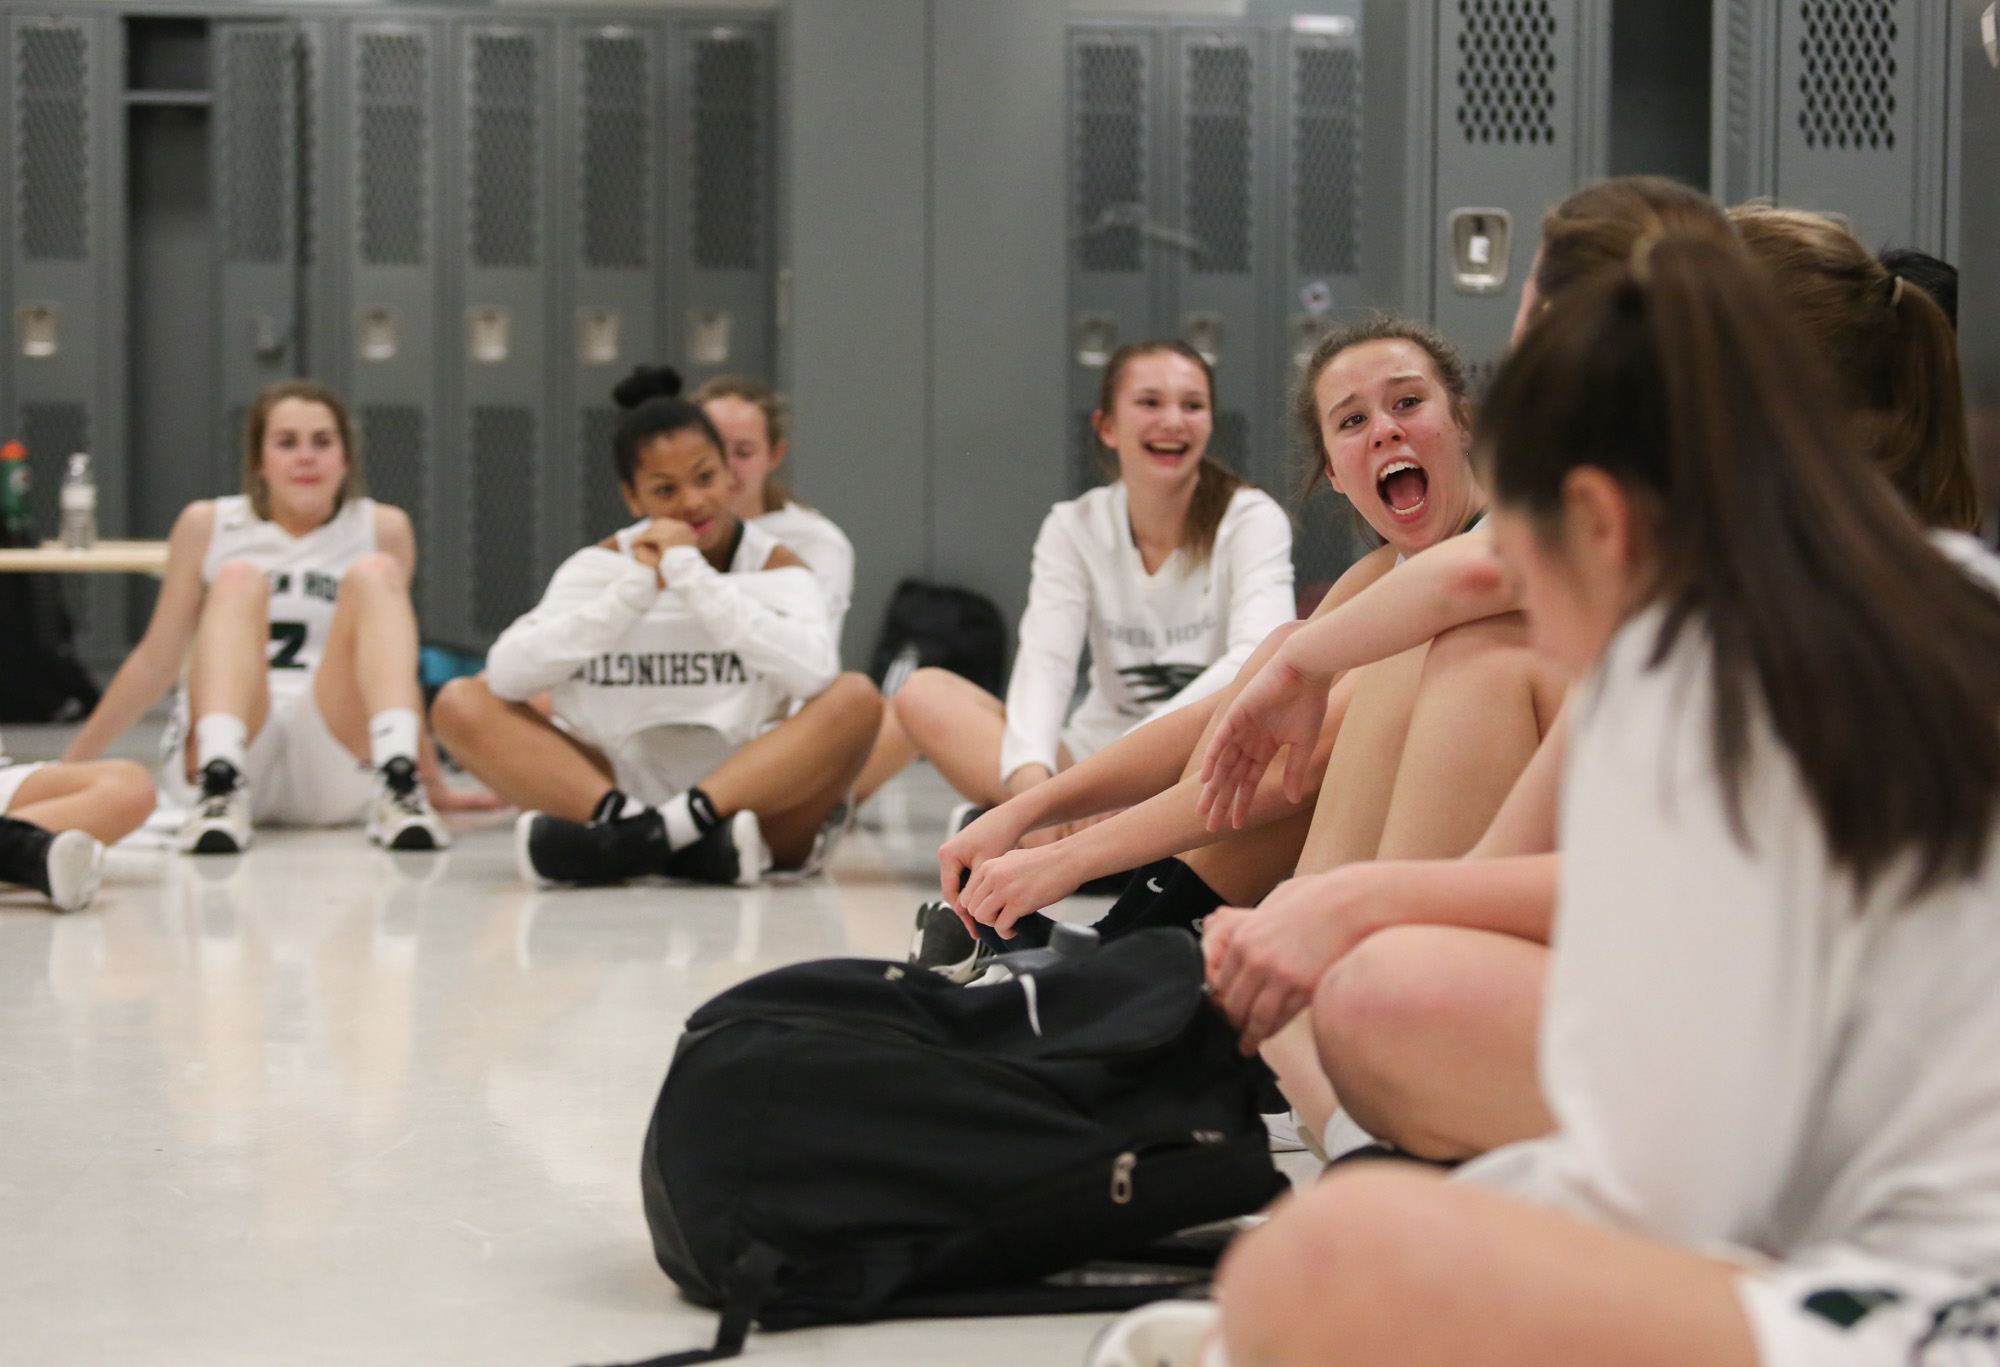 Green Hope girls celebrate the conference tournament championship after winning Holly Springs at Apec Friendship High School locker room on Feb.17, 2017.